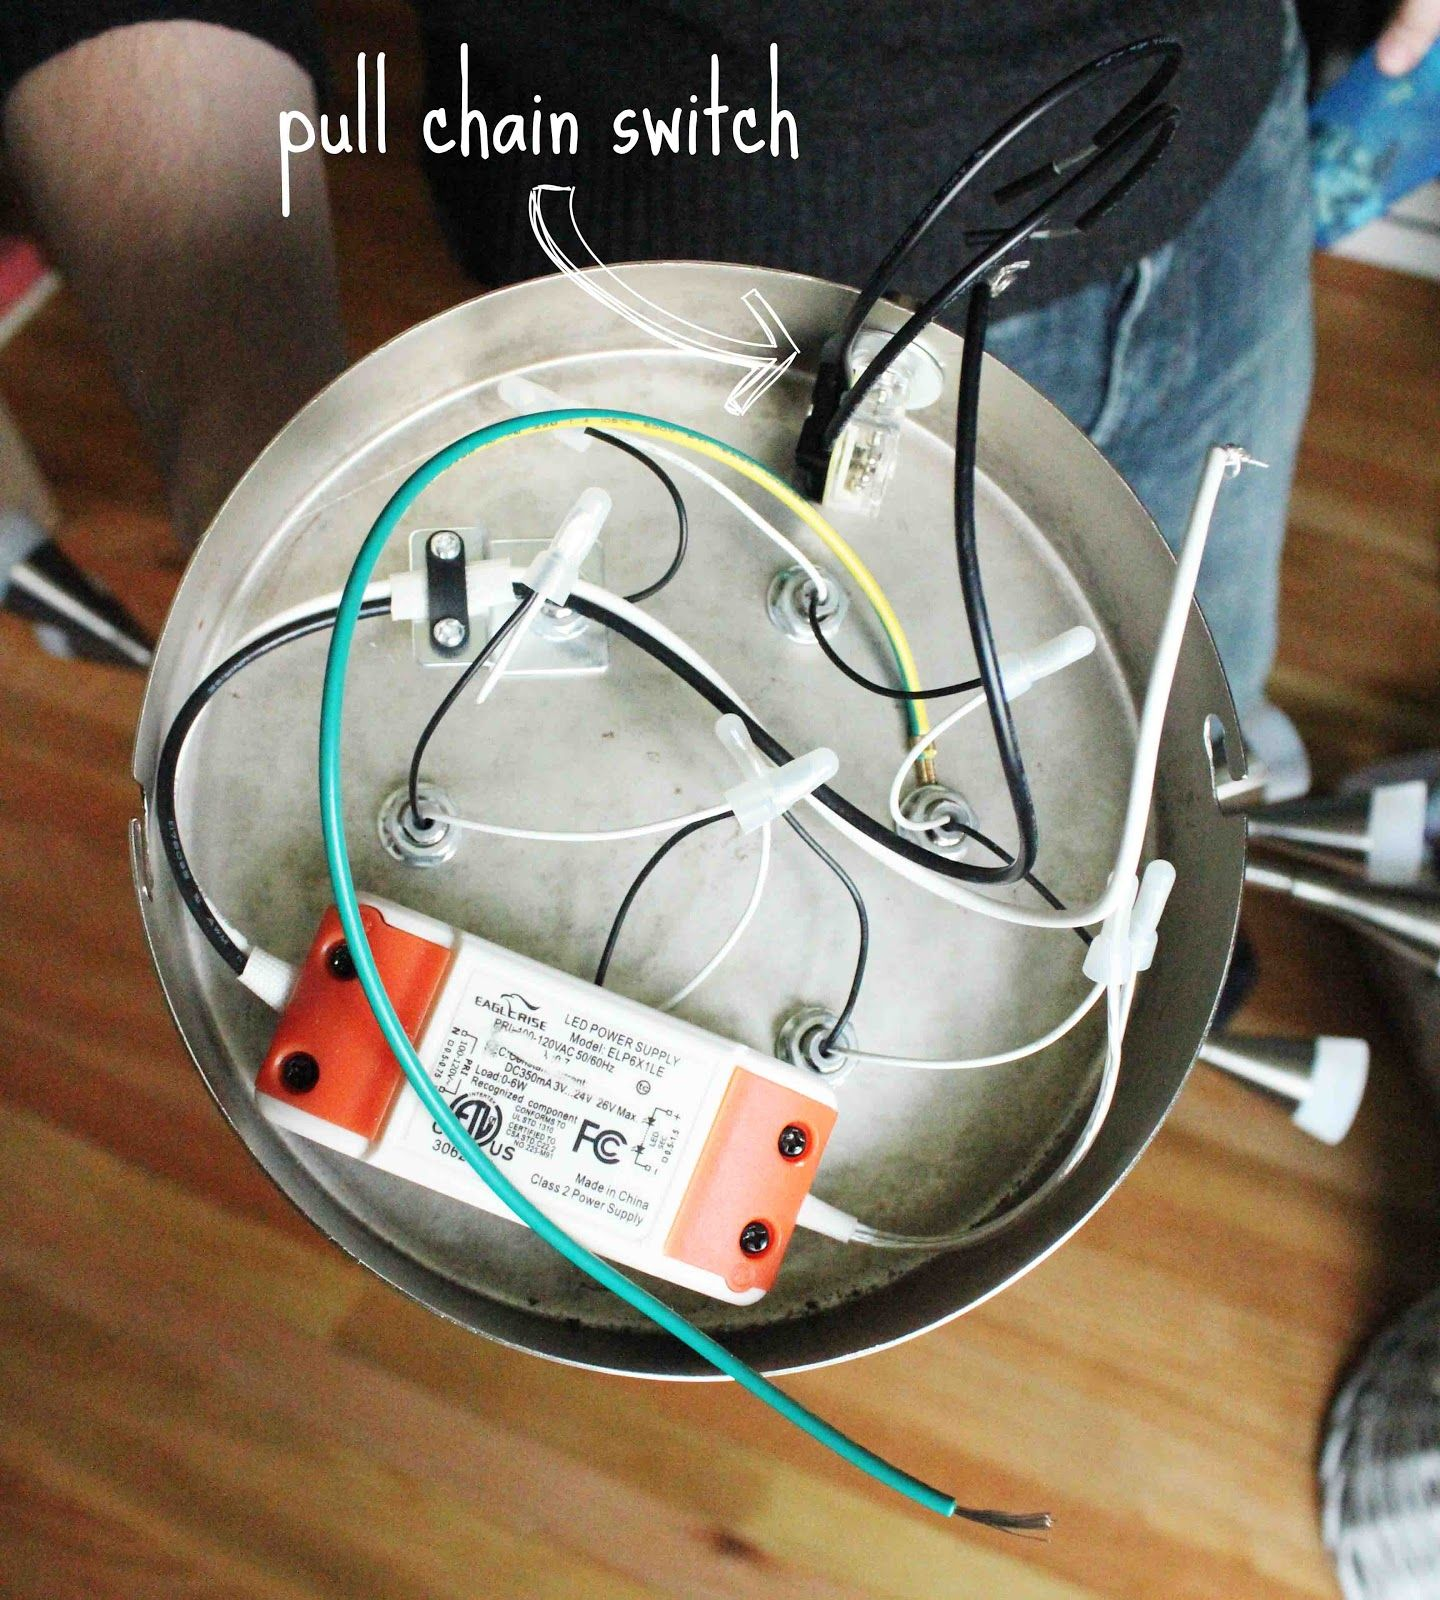 Crab Fish Convert Any Light To A Pull Chain Fixture Pull Chain